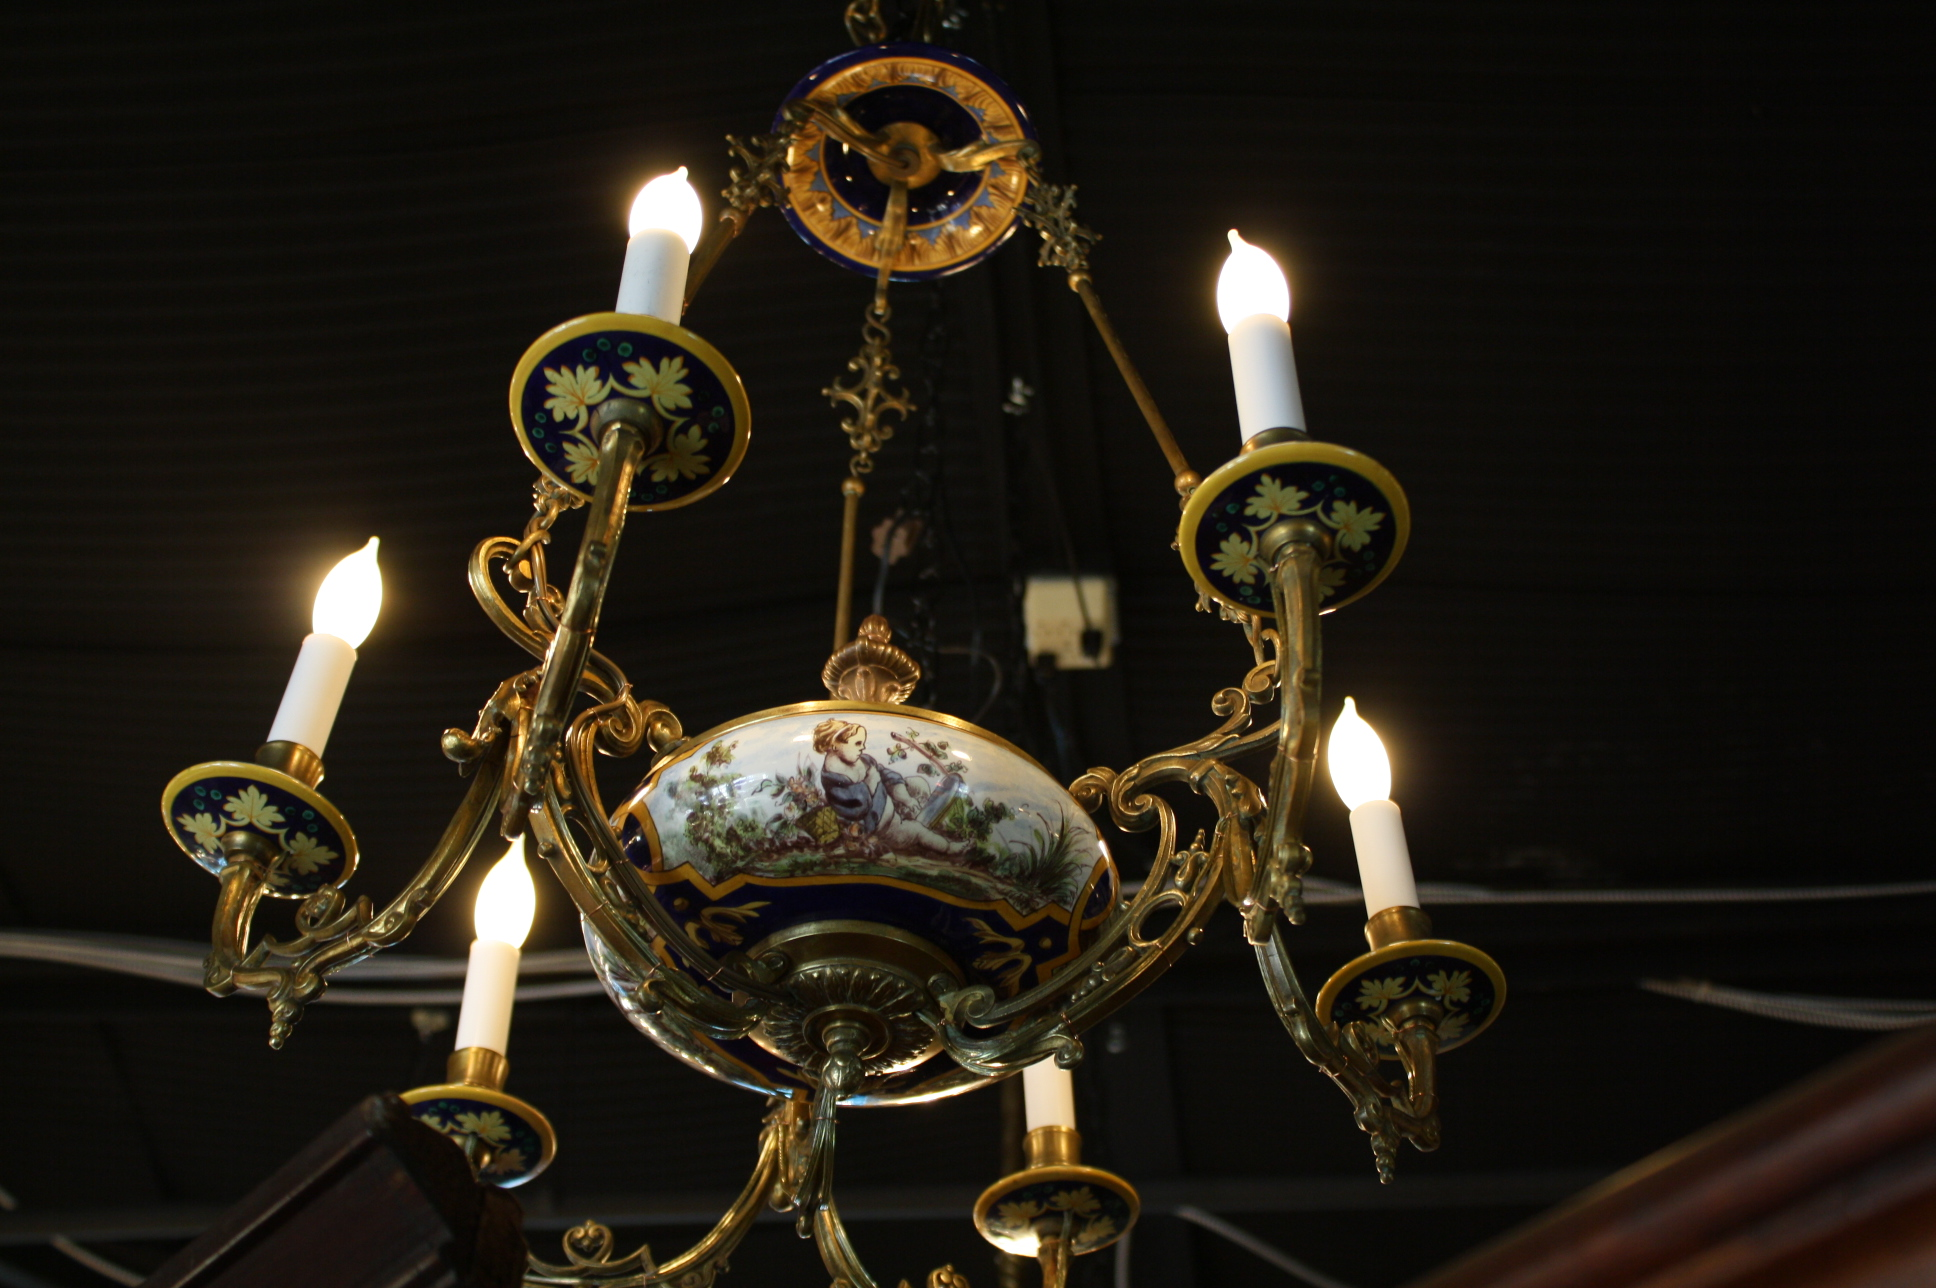 Antique italian chandelier for sale antiques classifieds antique italian chandelier for sale aloadofball Gallery